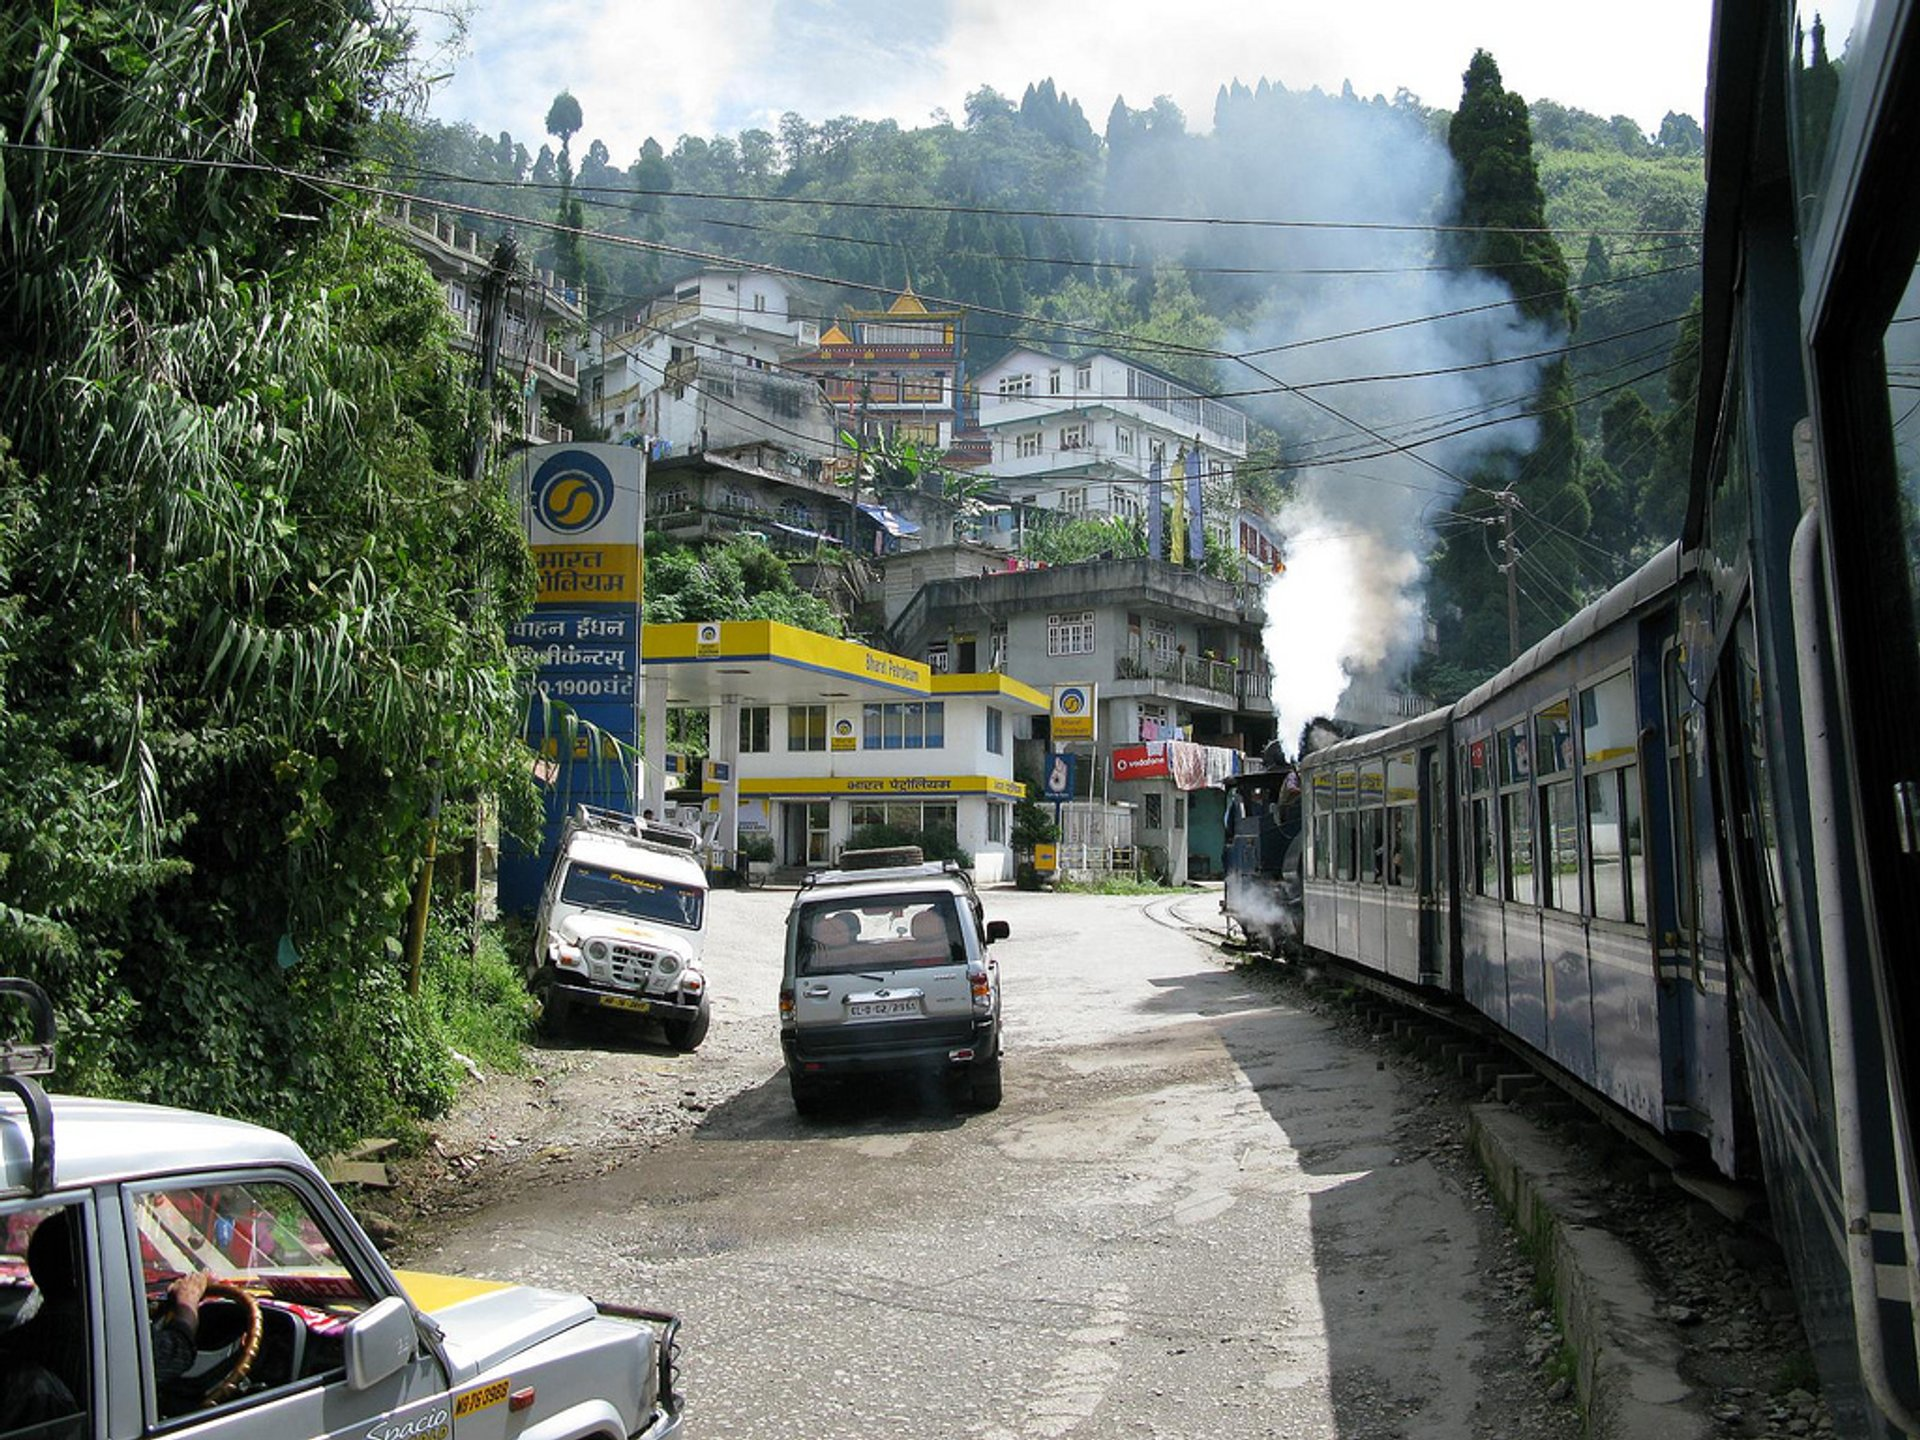 Darjeeling Himalayan Railway in India - Best Season 2019